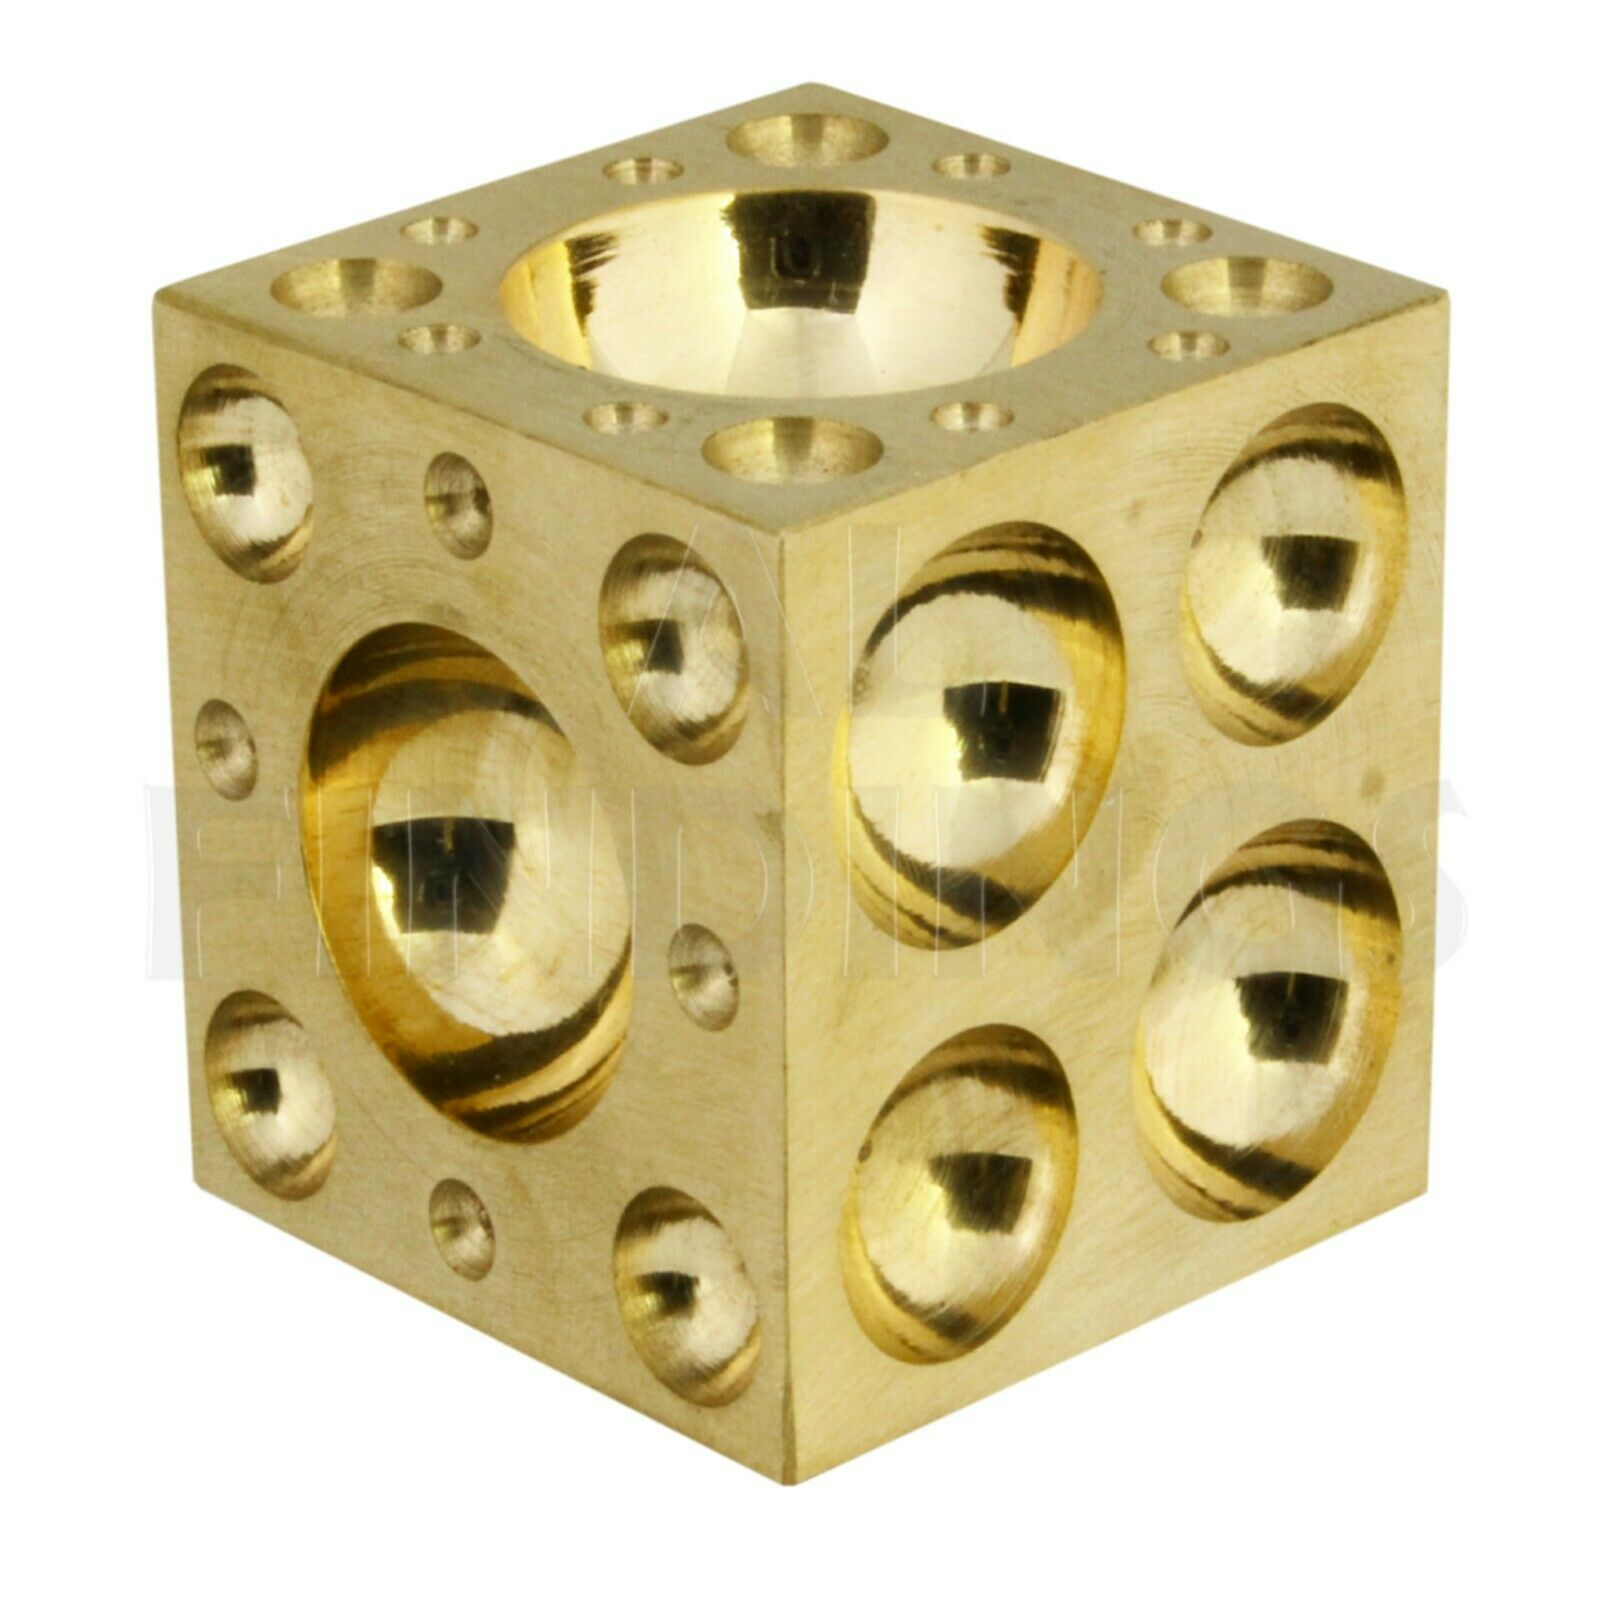 "Proops 2/"" 50mm Jewellers Solid Brass Doming Dapping Forming Block M0034"